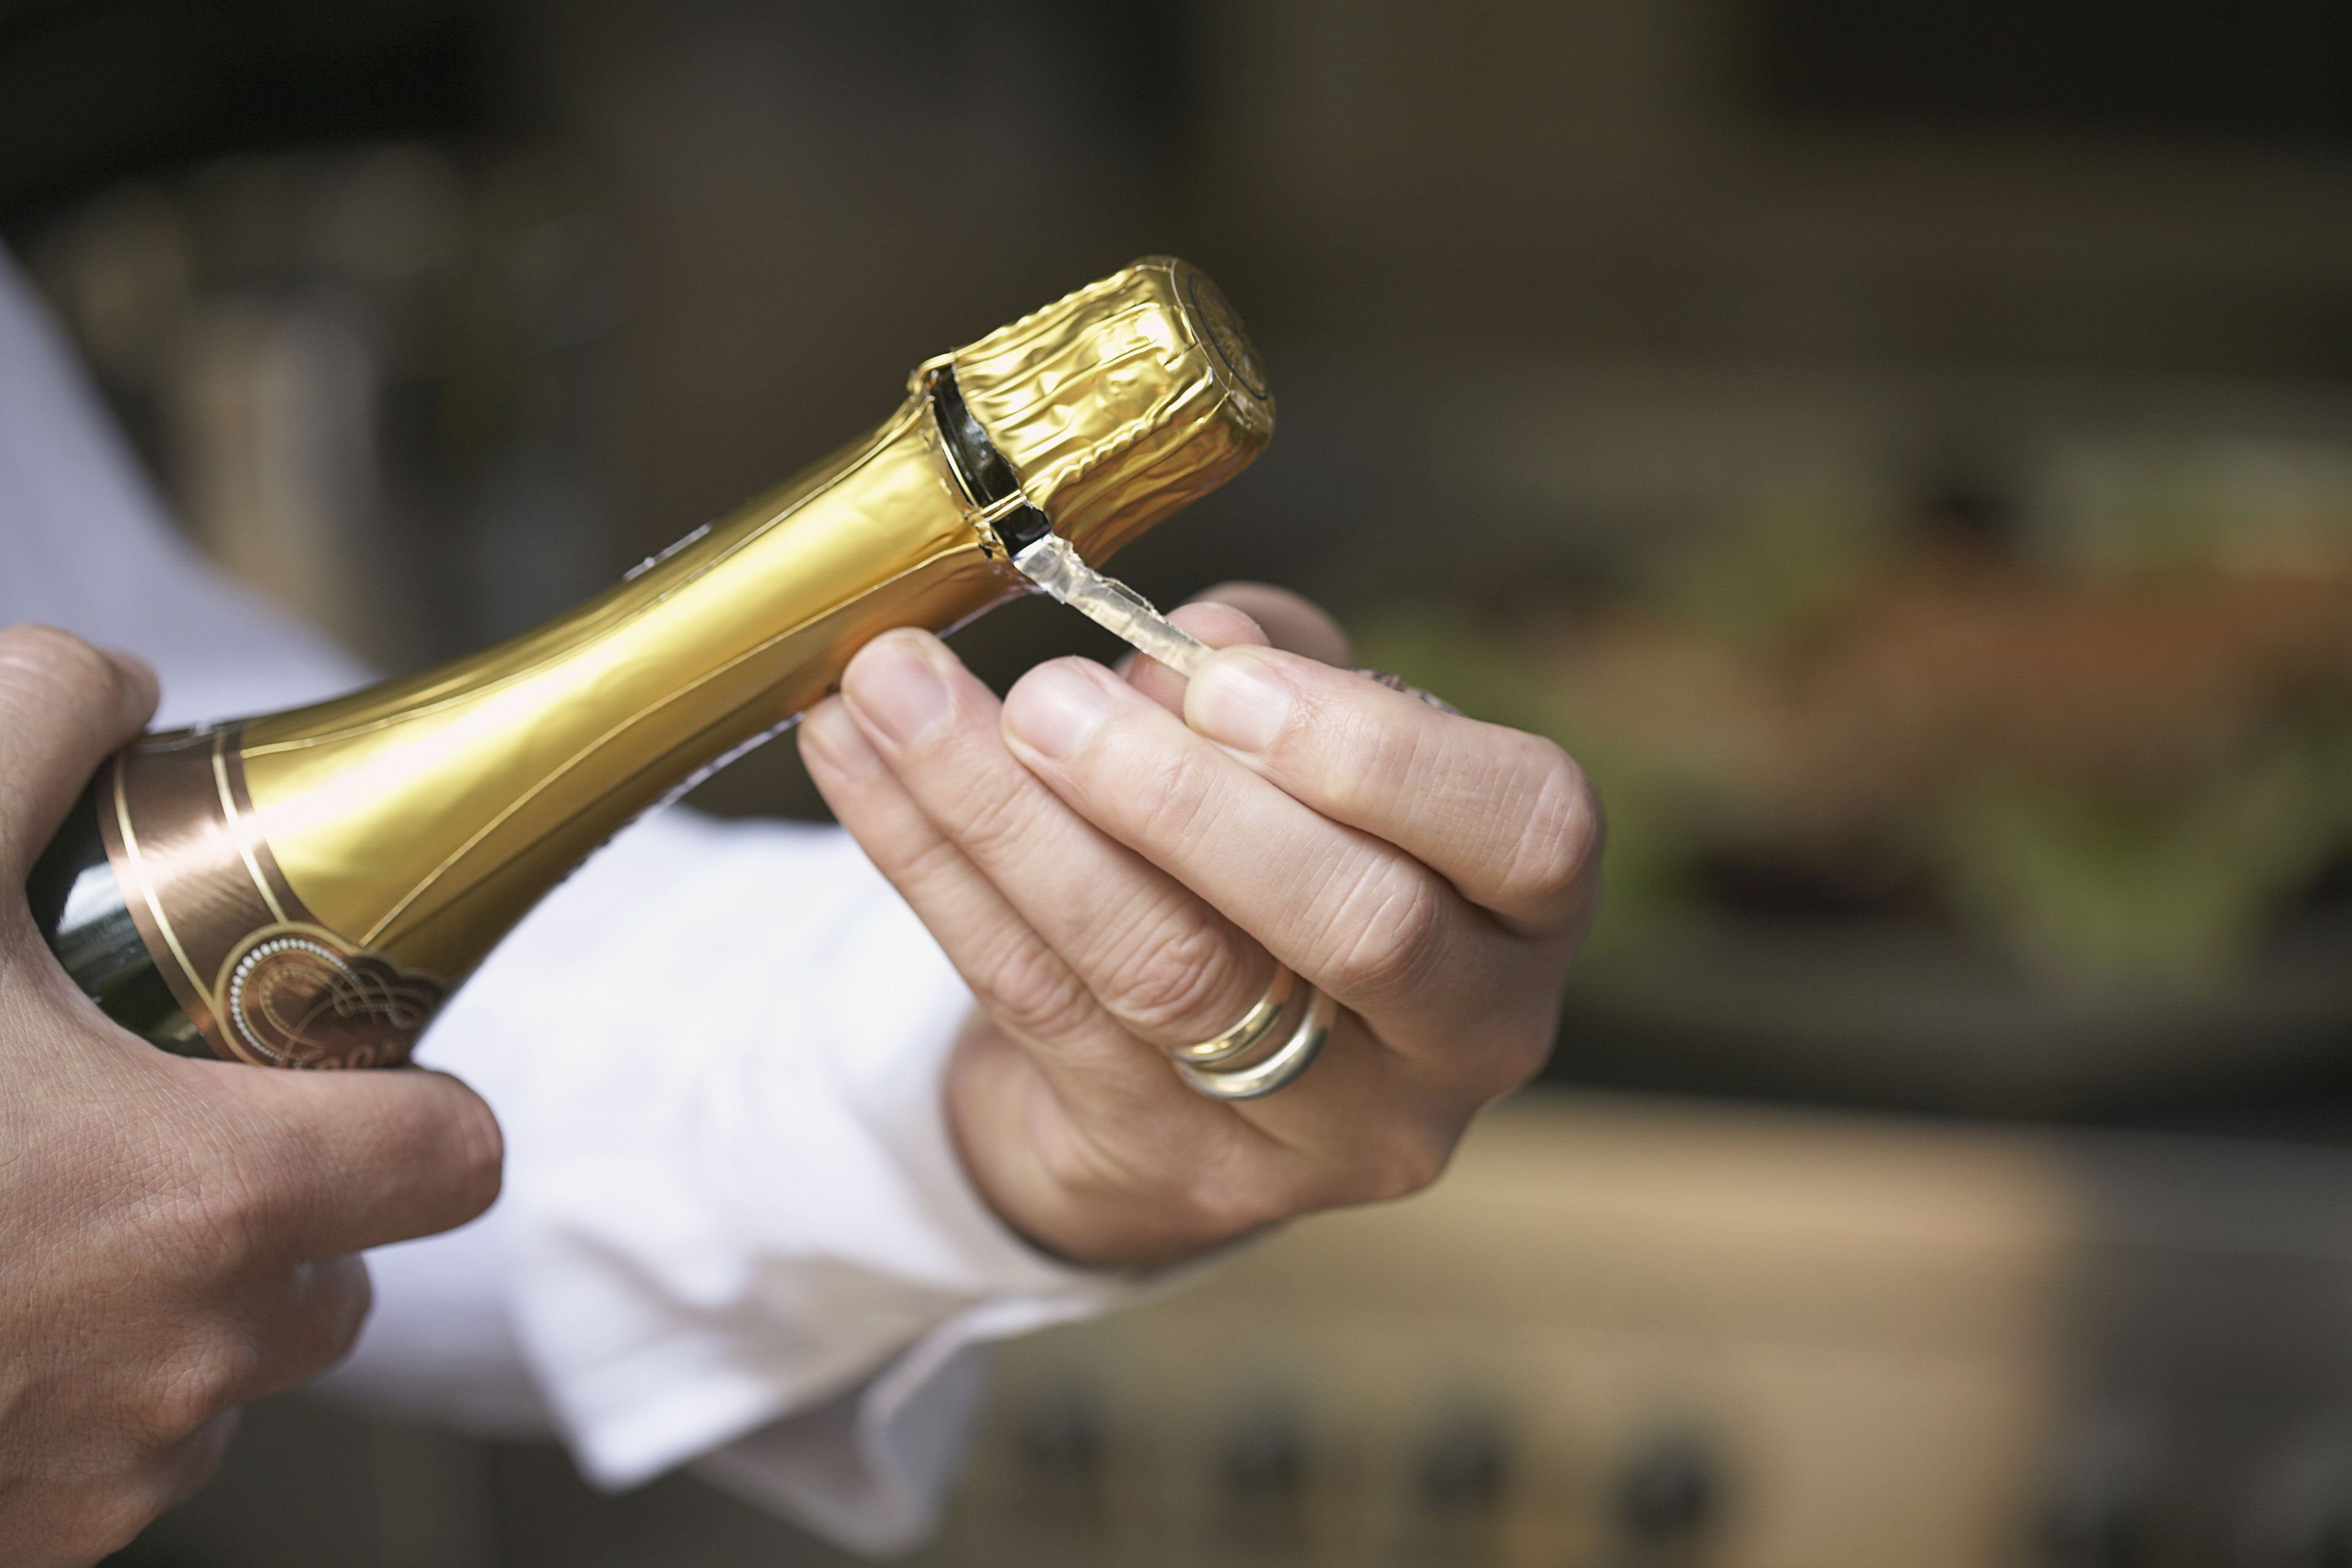 How to Uncork Champagne